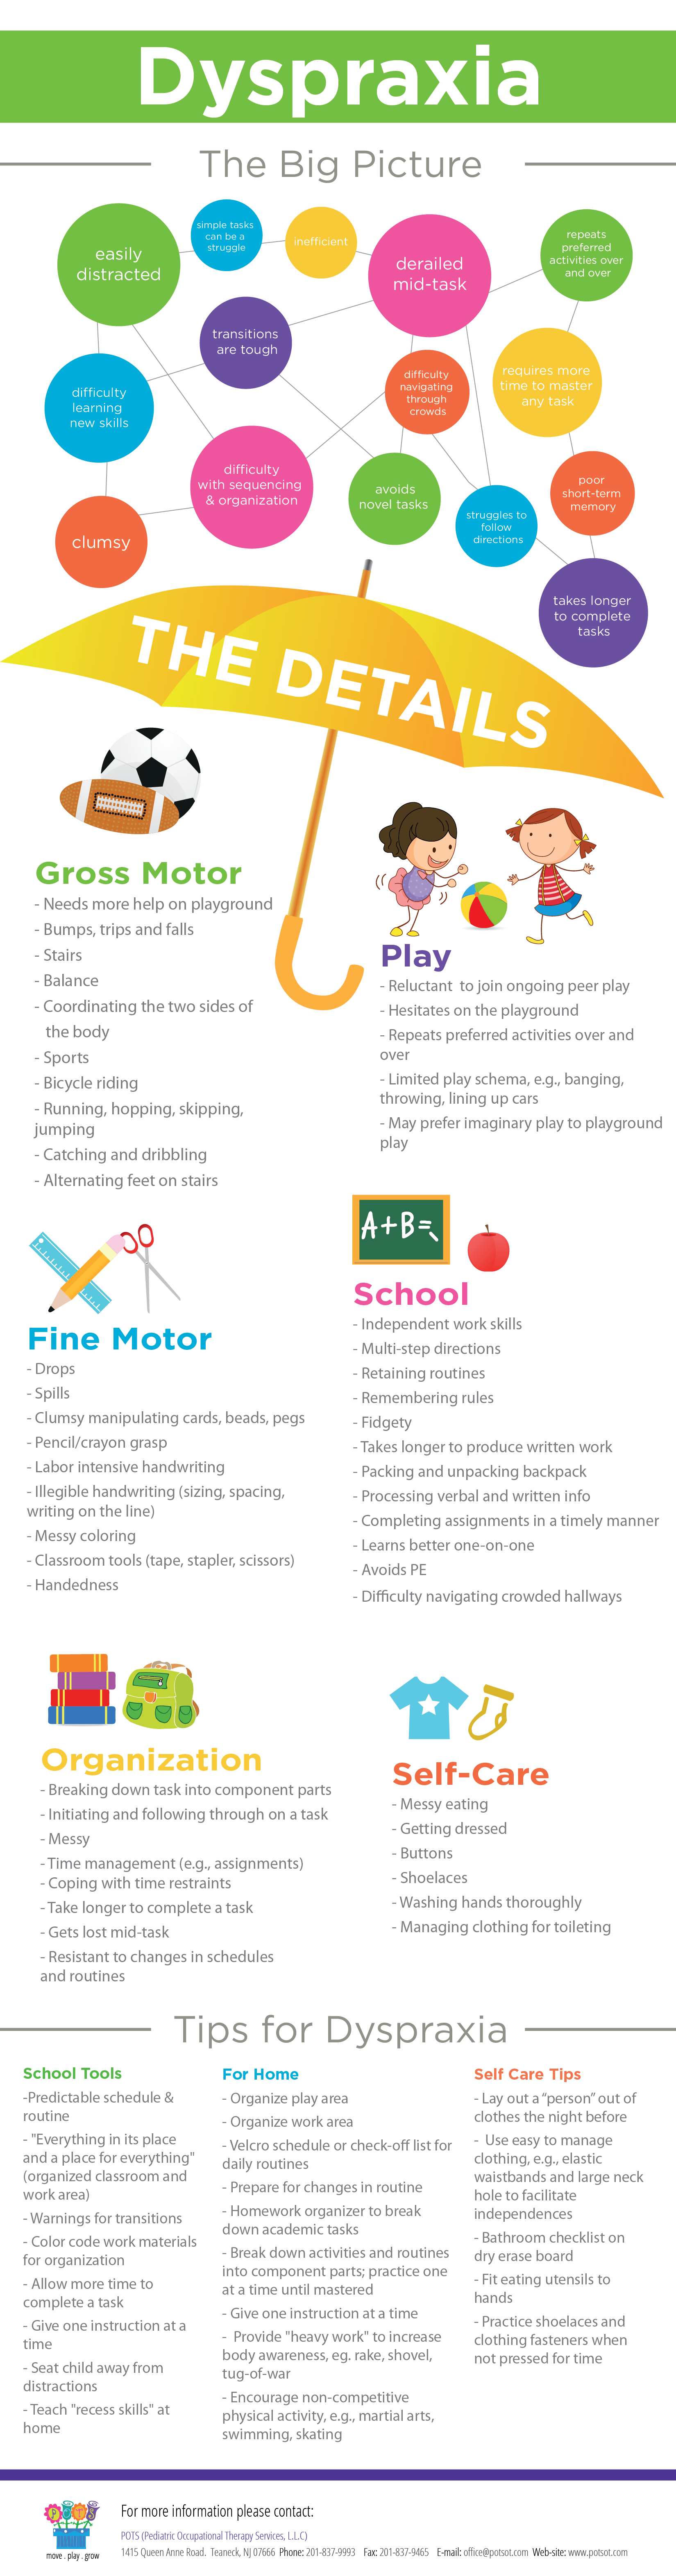 Dyspraxia Pinned by Pediatric Therapeutic Services, Inc  (Infographic) is part of Pediatric occupational therapy - Dyspraxia can hinder success  Do you knoww what it is and how to help a child with dyspraxia  This infographic will fill you in